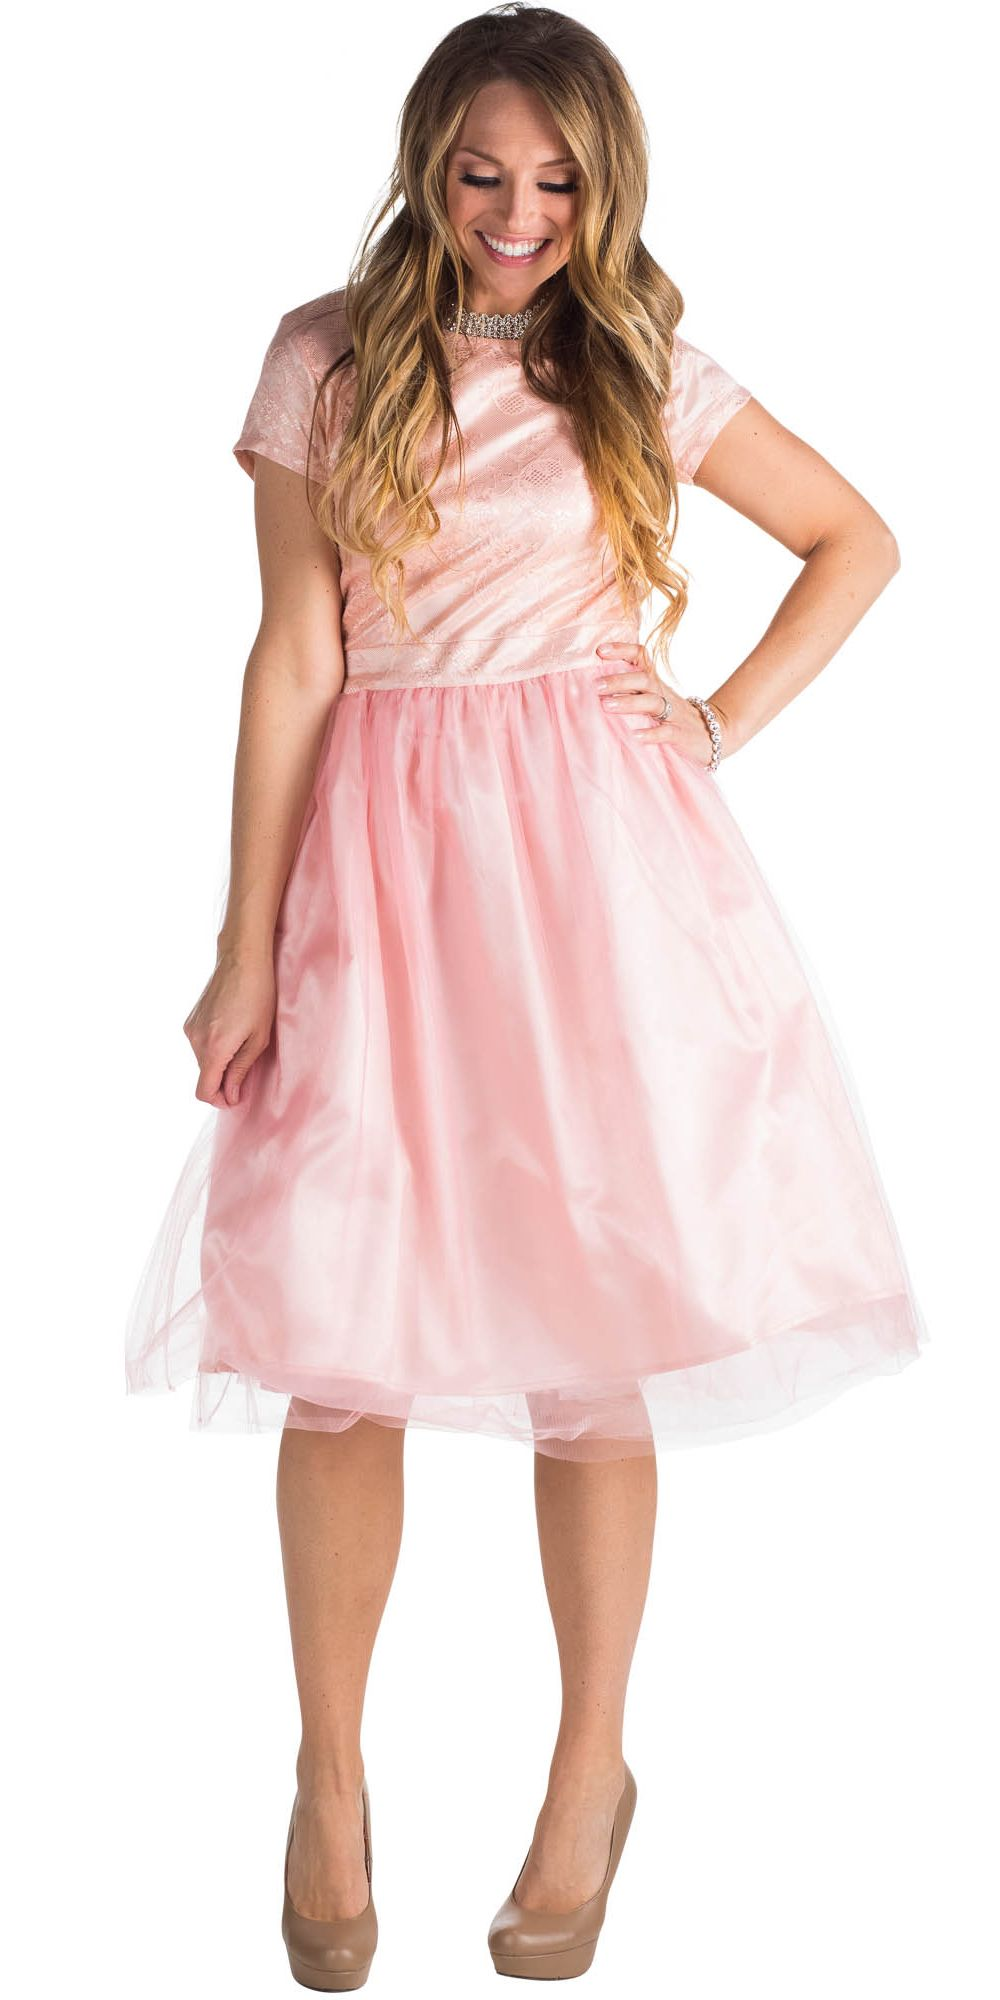 Bella Tulle Modest Prom or Bridesmaid Dress - Pink Champagne / Blush ...